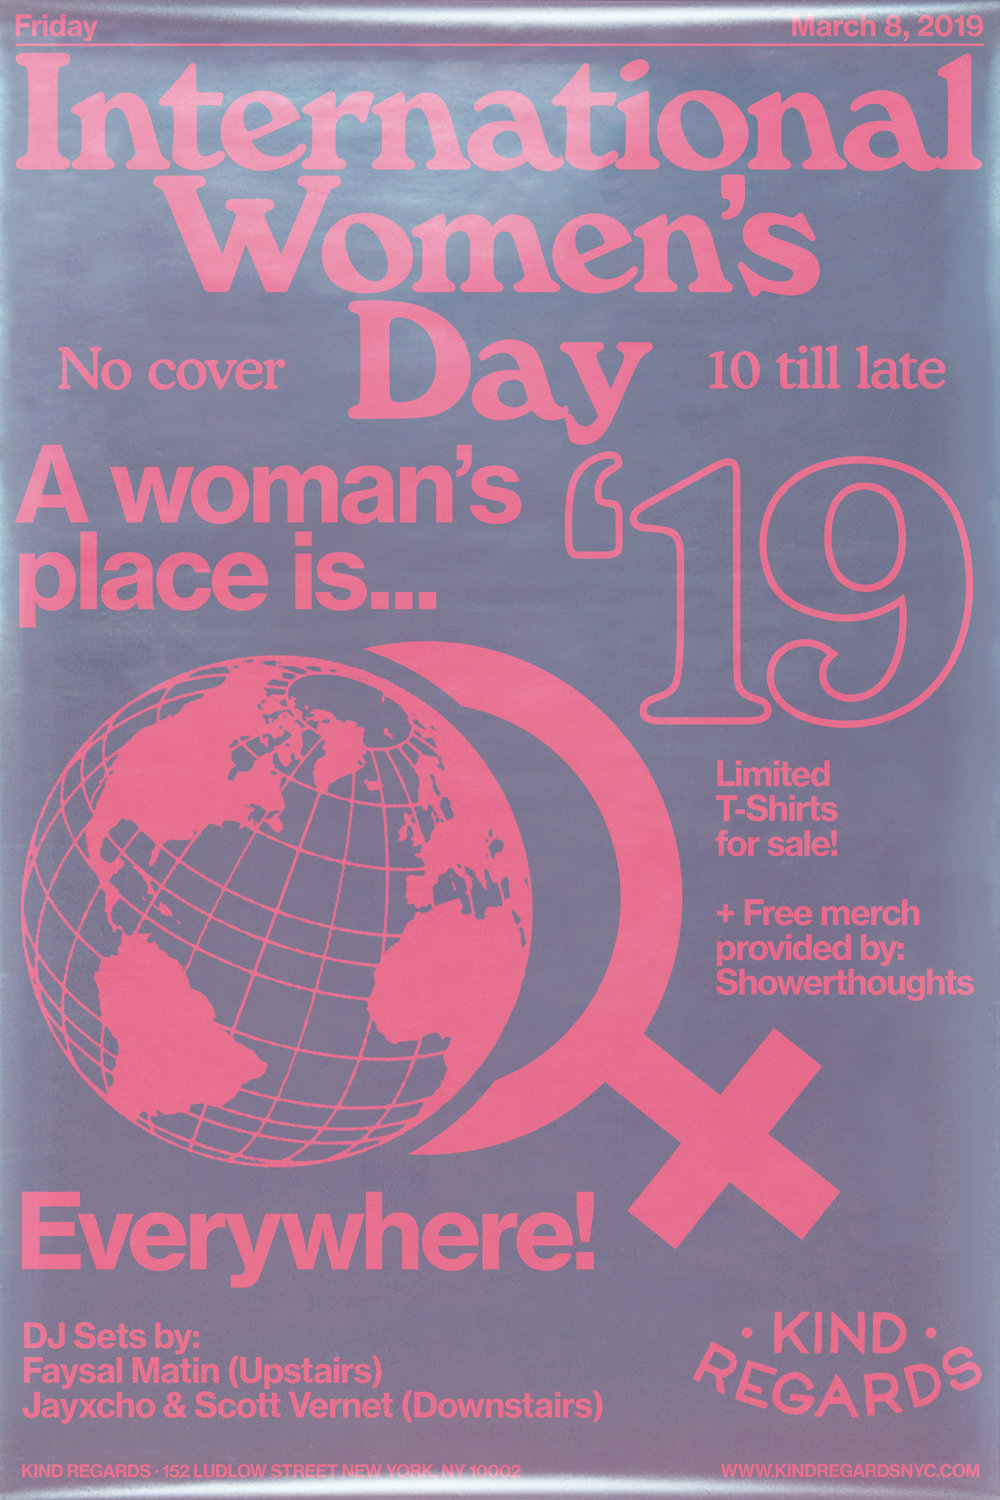 womens day poster pink and gray.jpg